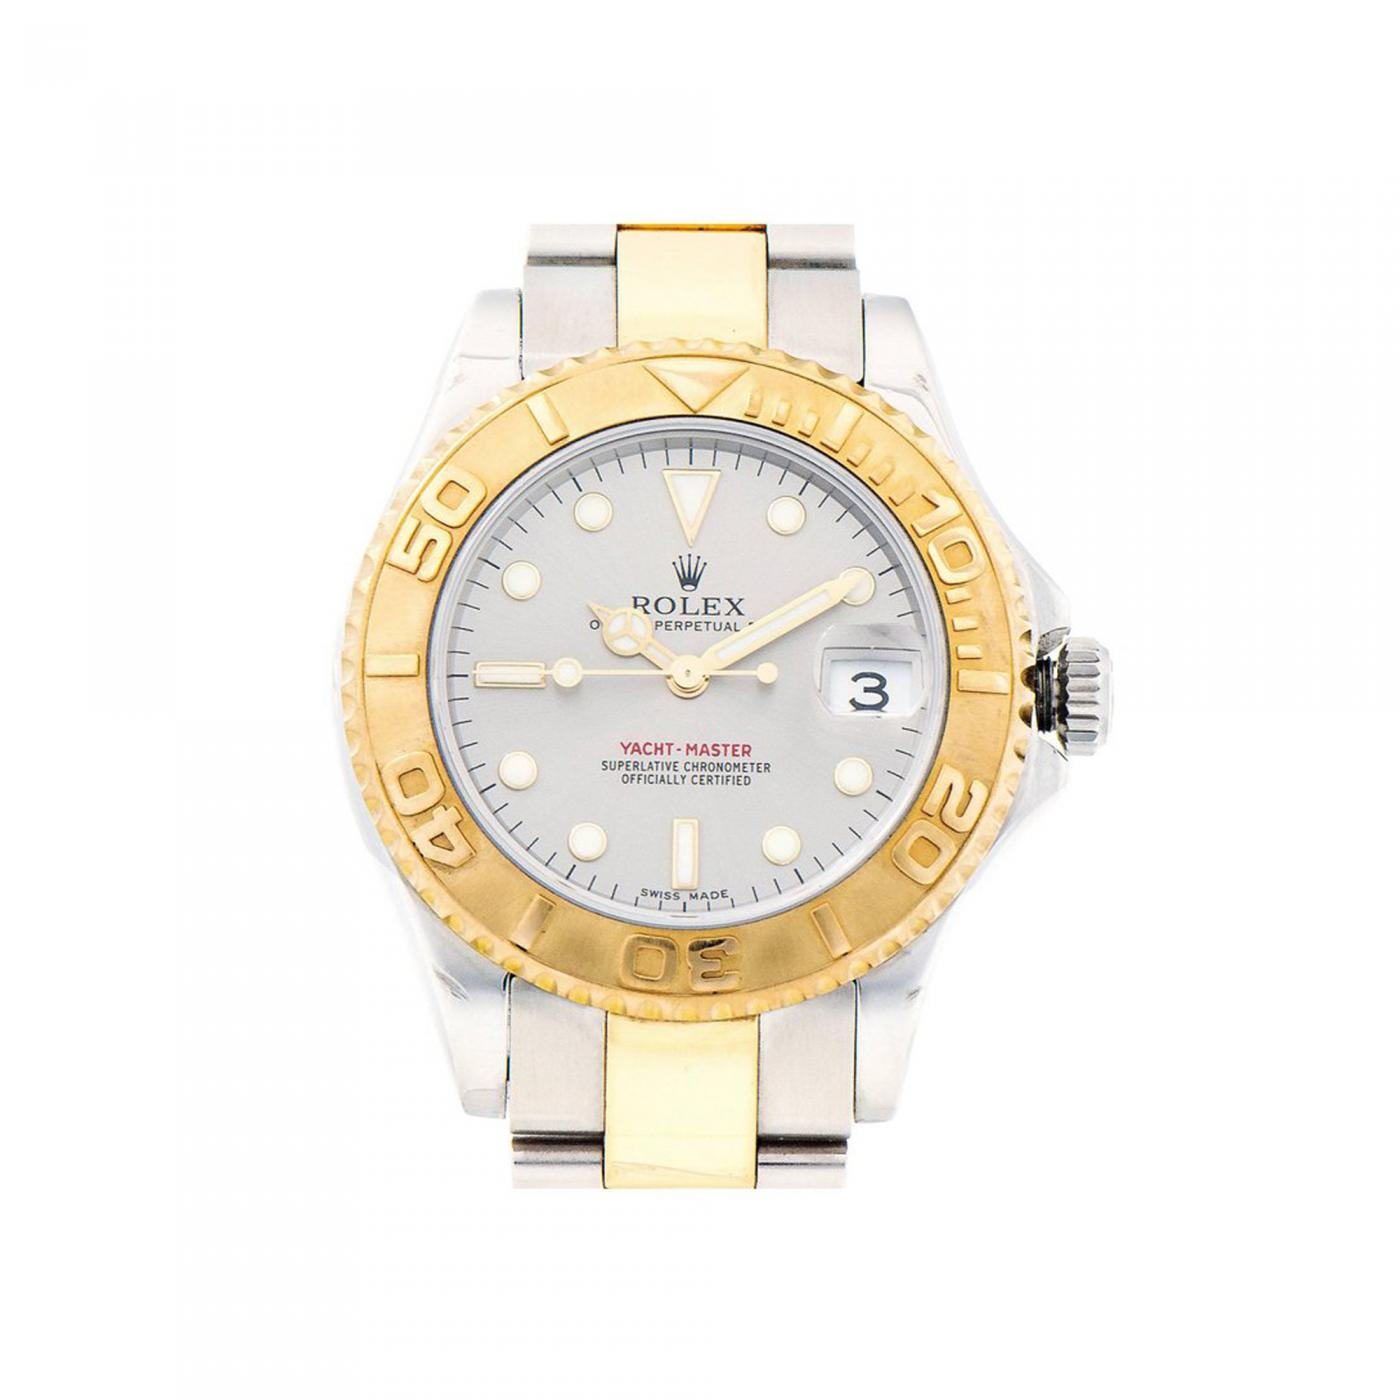 Stainless Rolex Rolex Rolex Yellow Gold Stainless Steel Platinum Dial Midsize Yachtmaster Wristwatch